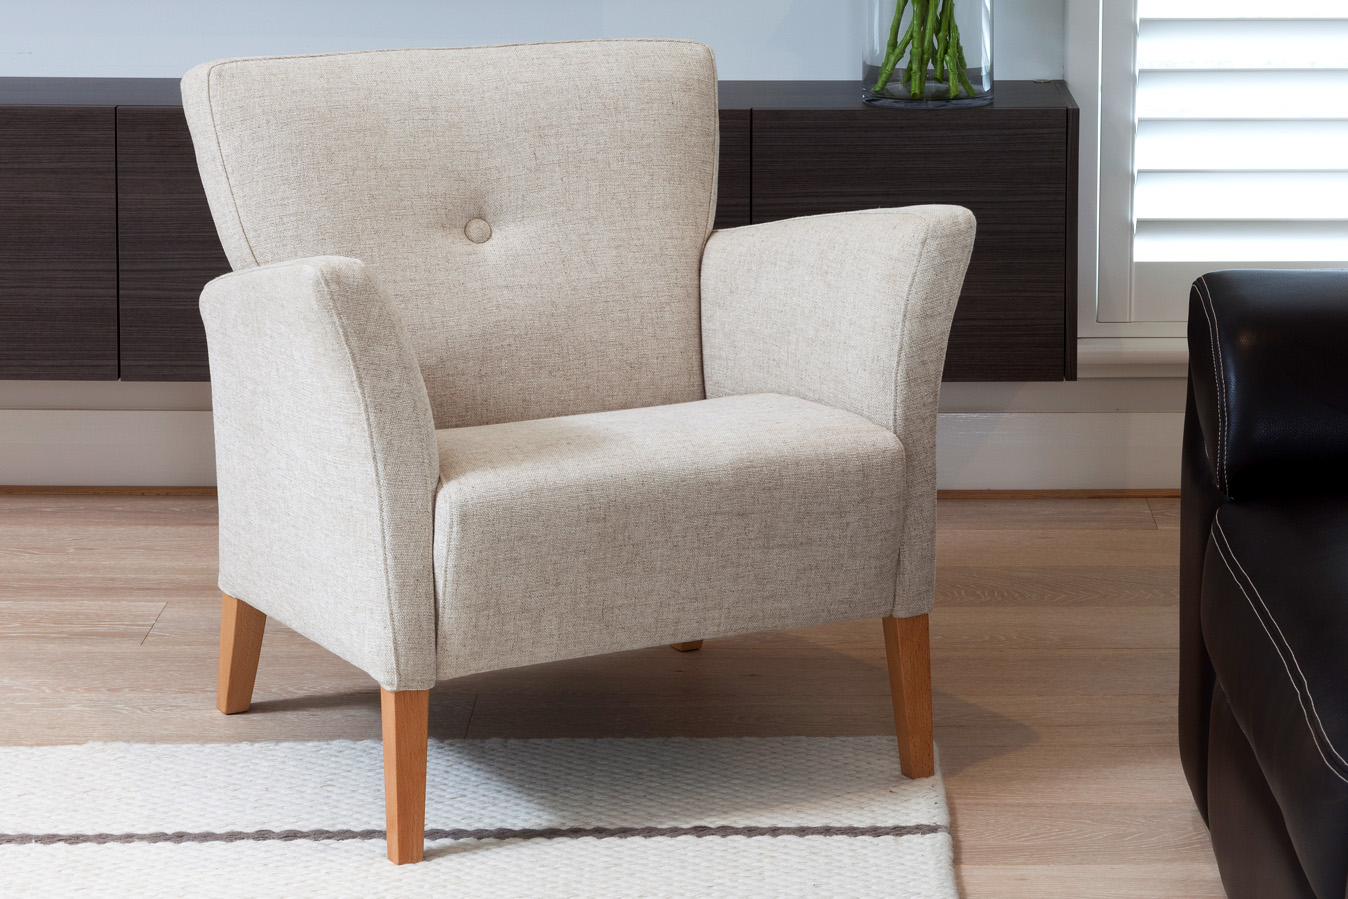 best reading chair australia tall upholstered chairs lotus  sofa design and manufacture perth